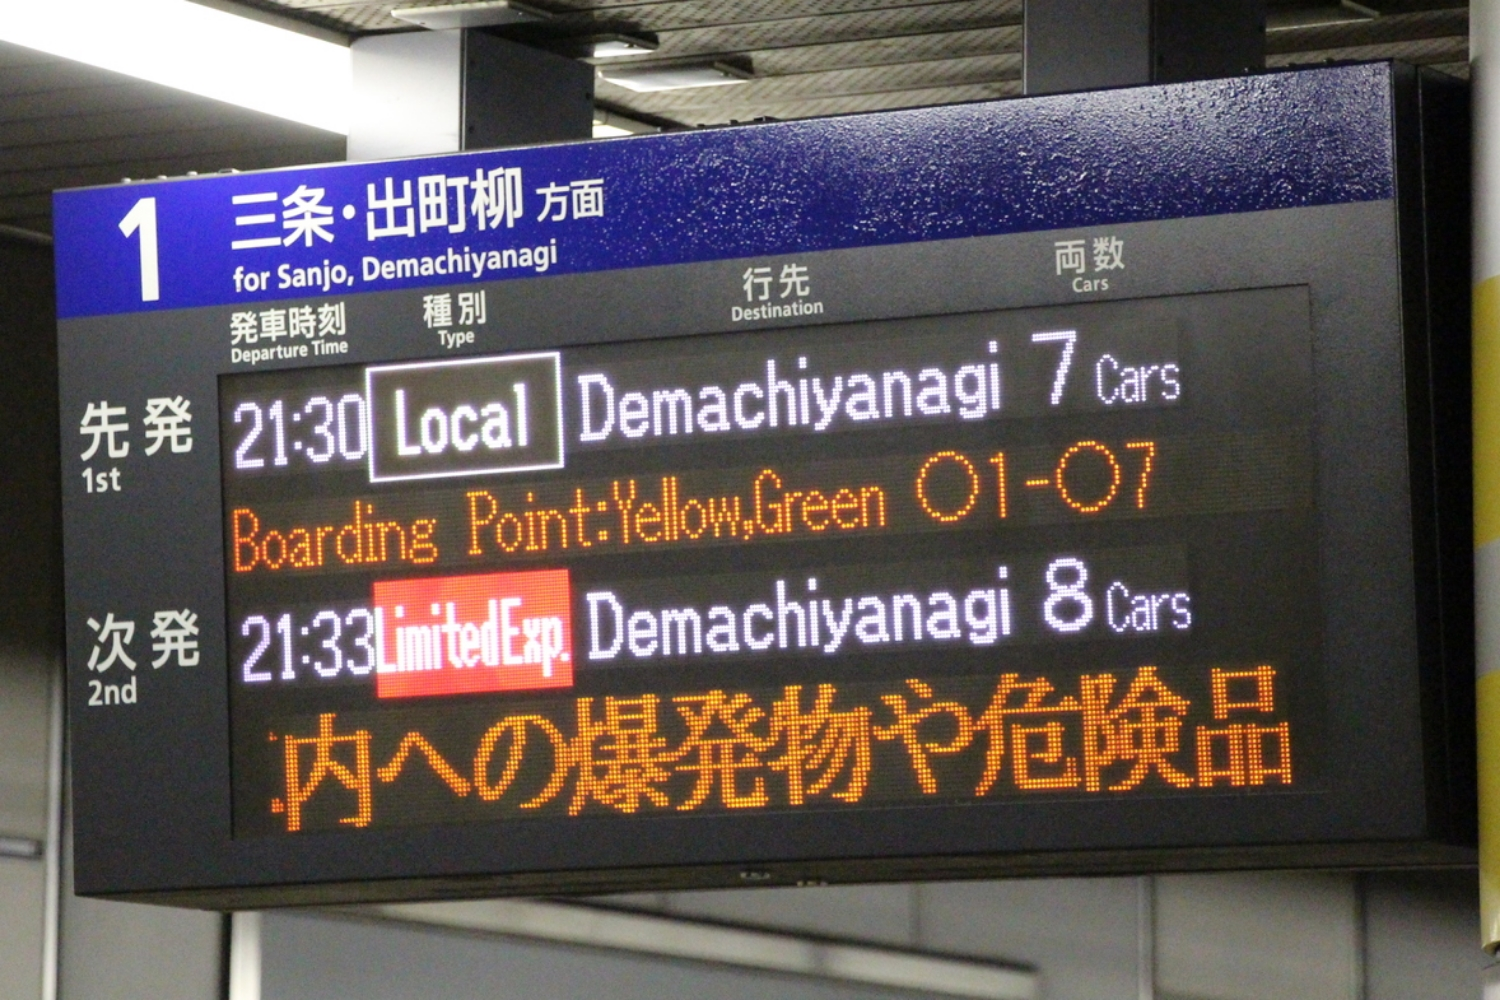 This sign, which rotates between Japanese and English, tells riders that the doors of the train will be on the yellow and green markers on the floor from circle 1 to circle 7.